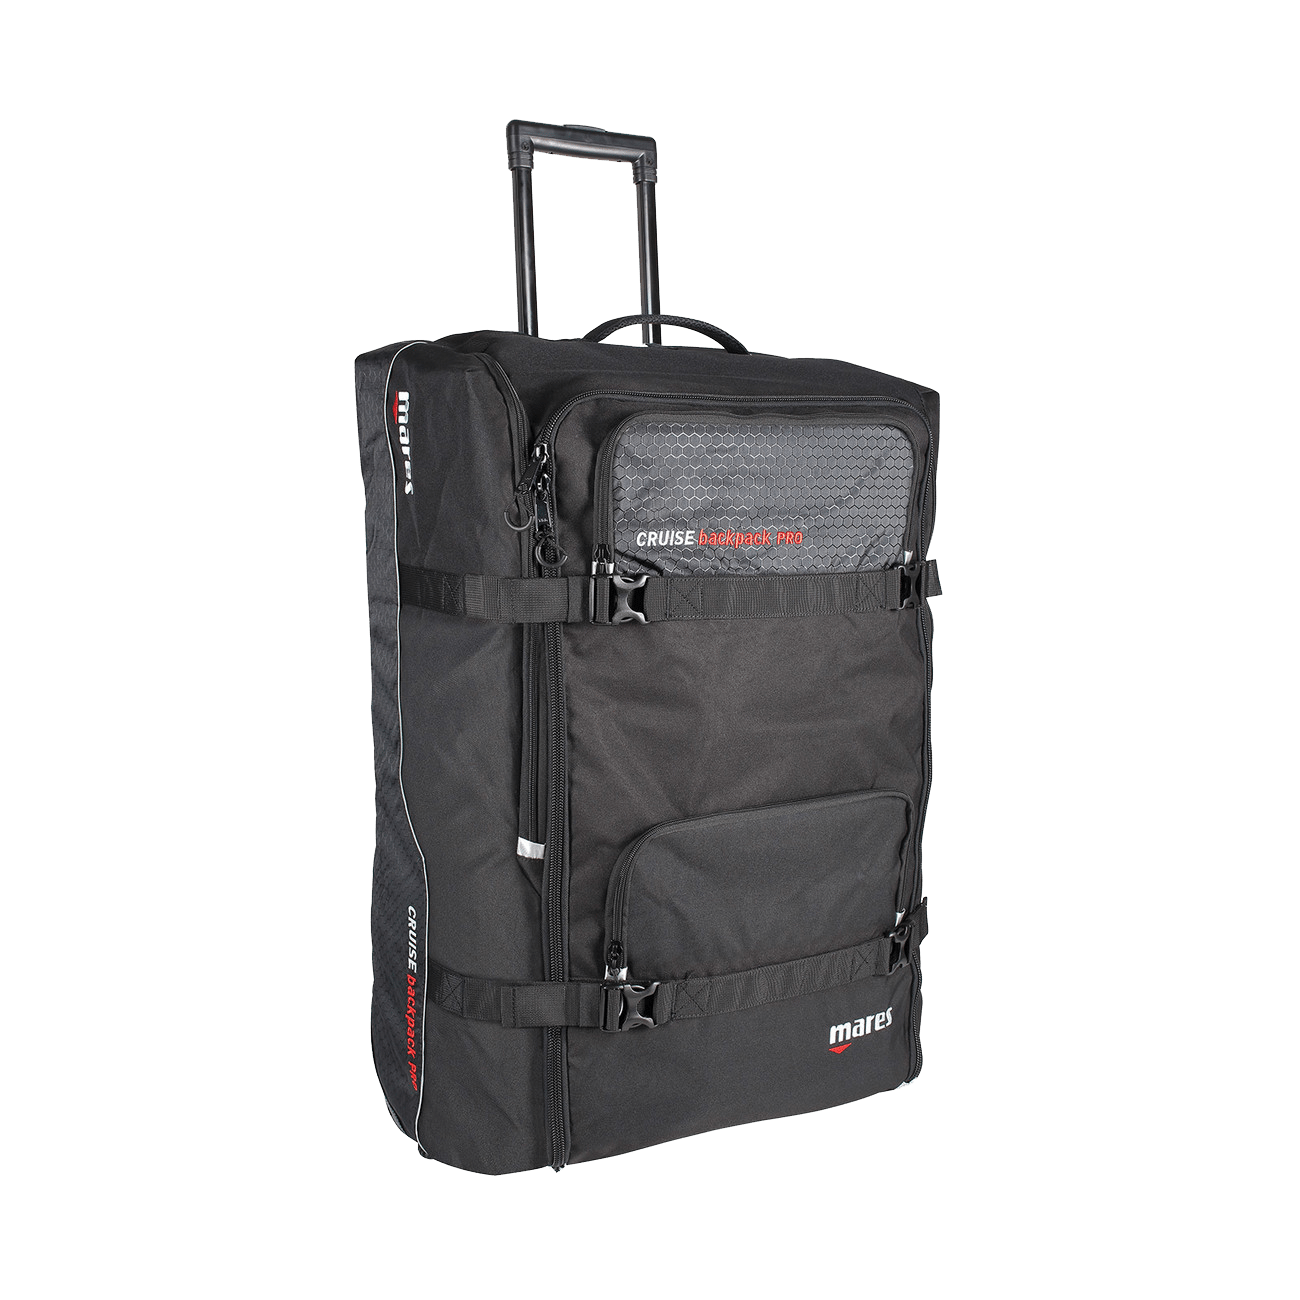 Mares Cruise Backpack Pro | Mares Dive Bags | Gill Divers